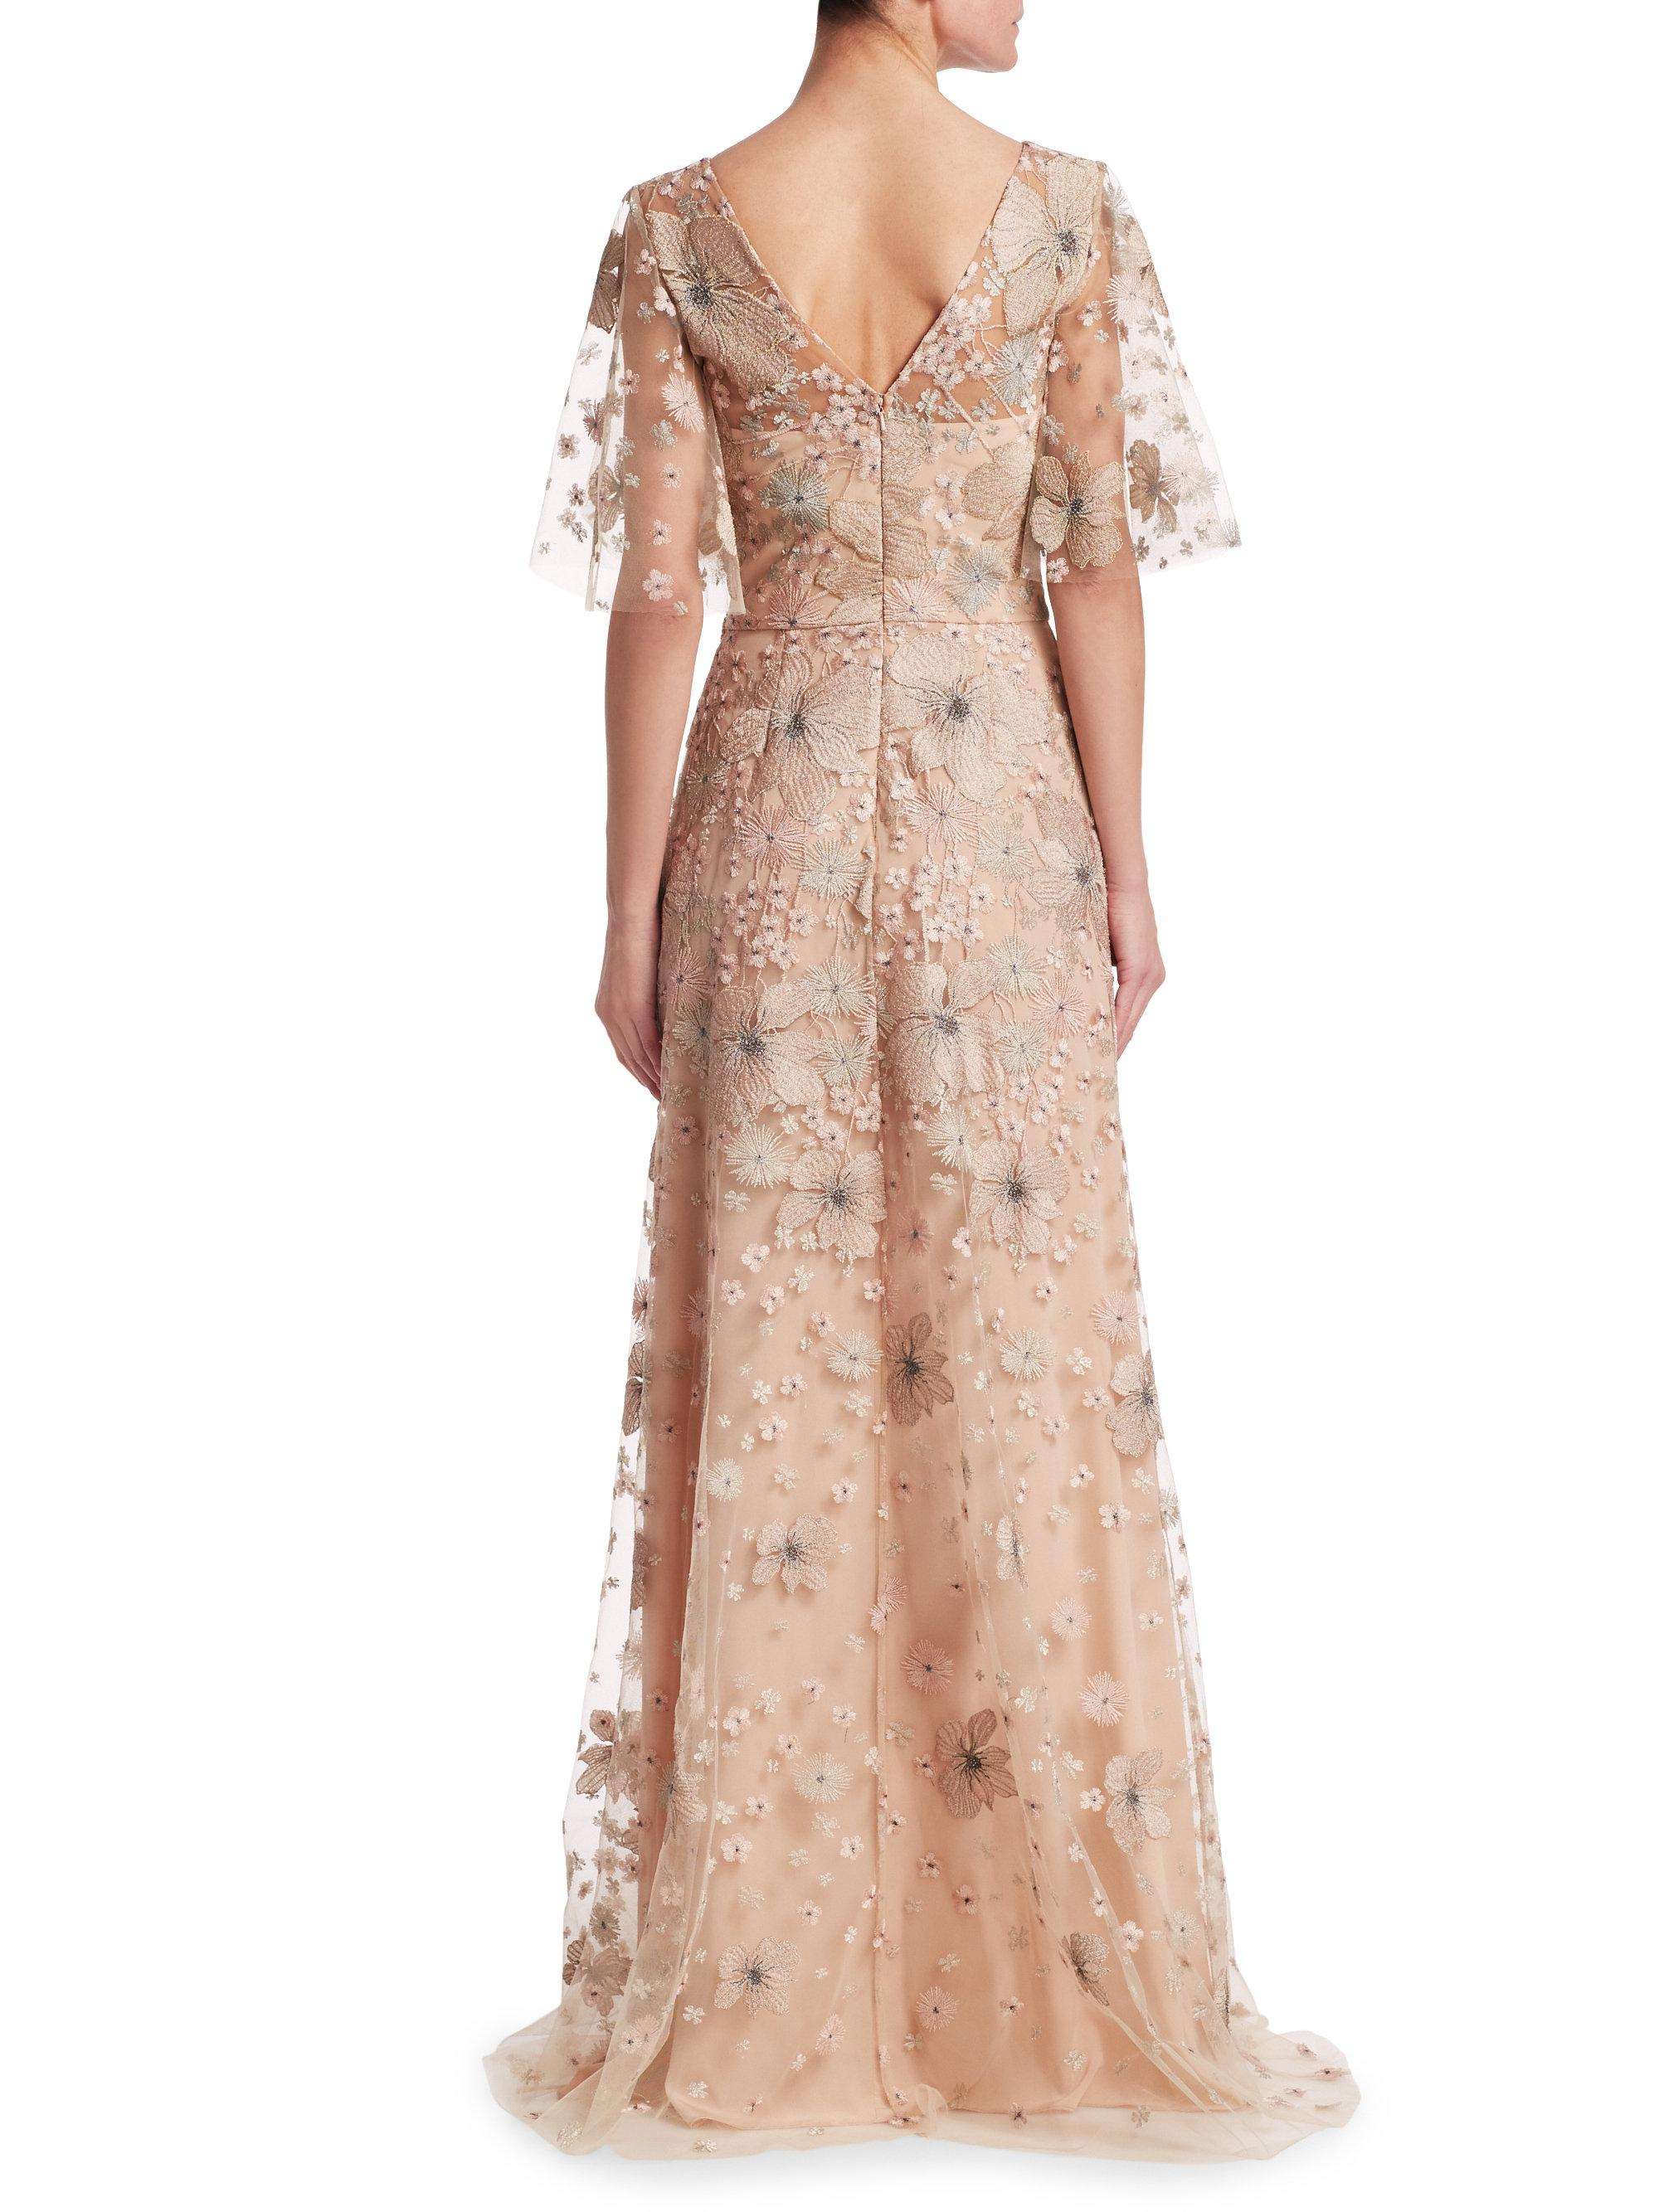 Lyst - David Meister Short Sleeve Floral Embellished Gown in Pink